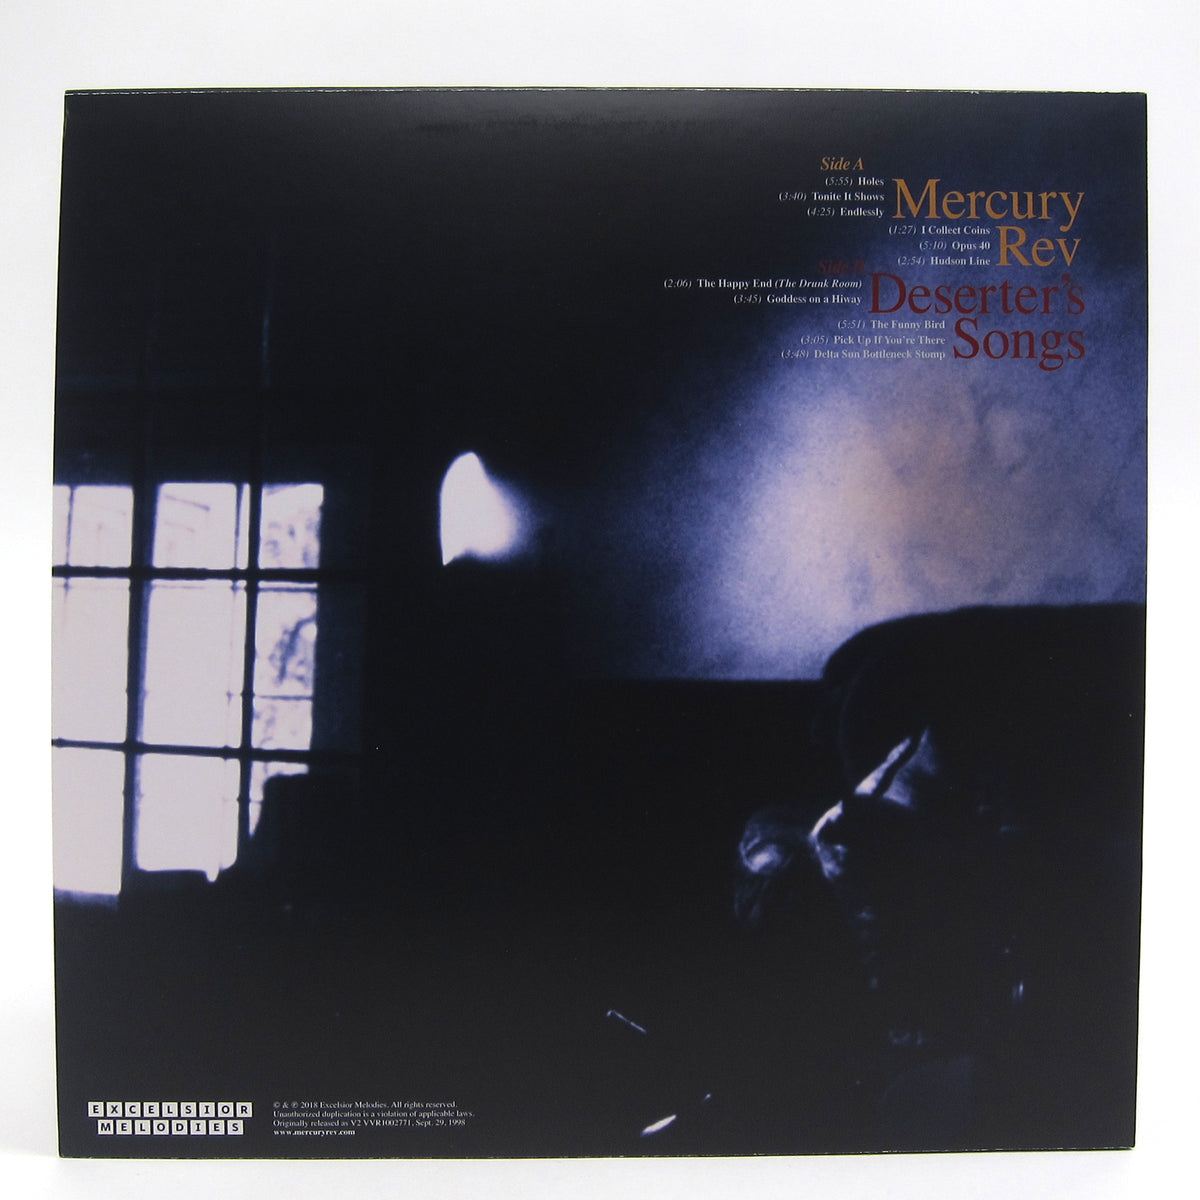 Mercury Rev: Deserter's Songs Vinyl LP